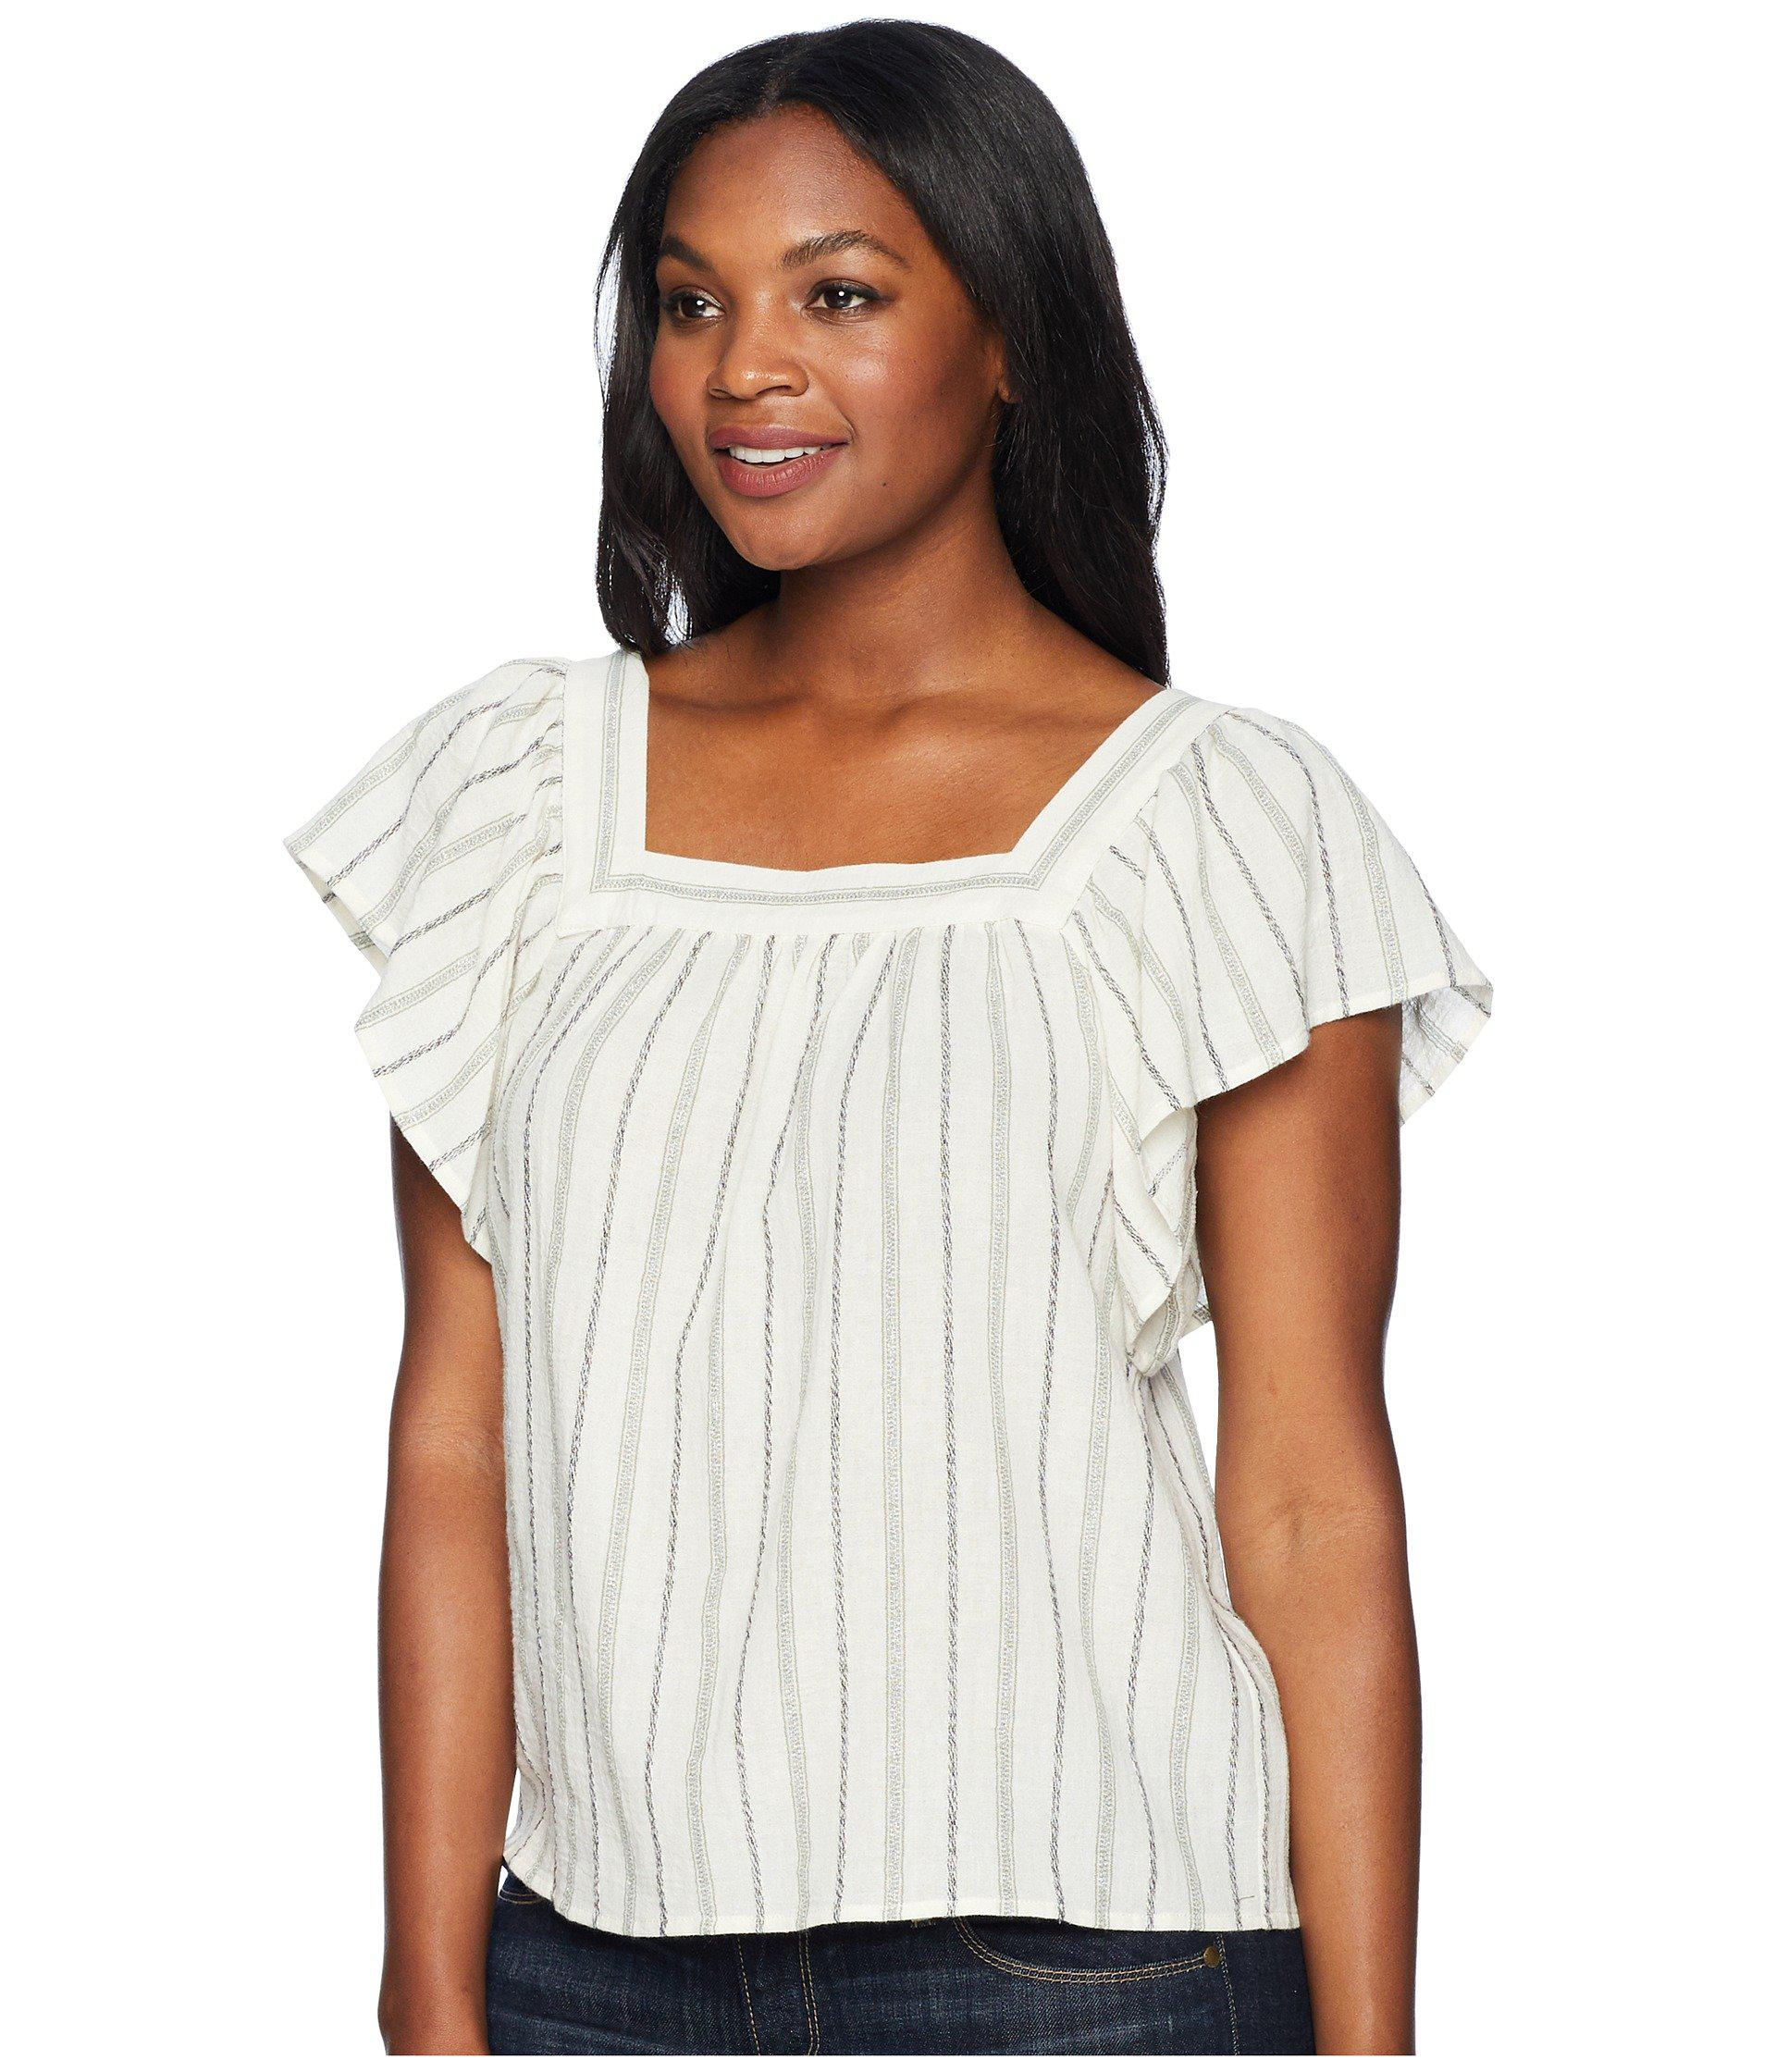 22ee0f3ba34 Lyst - Two By Vince Camuto Metallic Stripe Ruffle Sleeve Blouse in White -  Save 58.18181818181818%